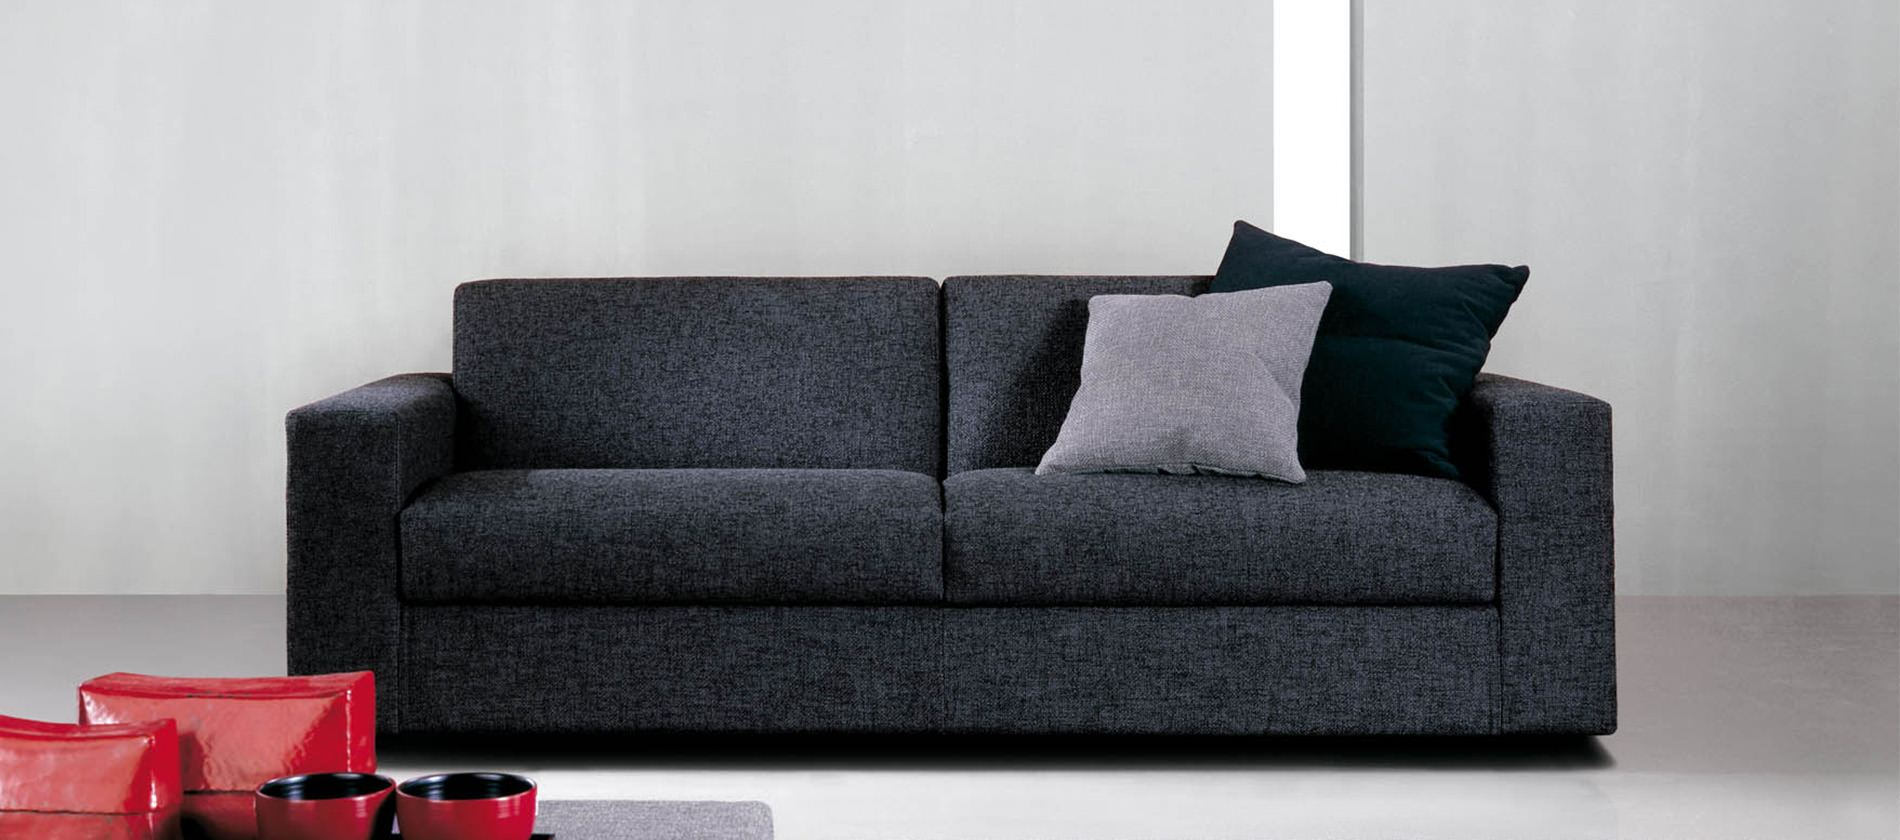 sofa mit abnehmbaren bezug affordable sofa mit abnehmbaren bezug modulares abnehmbarem ikea. Black Bedroom Furniture Sets. Home Design Ideas